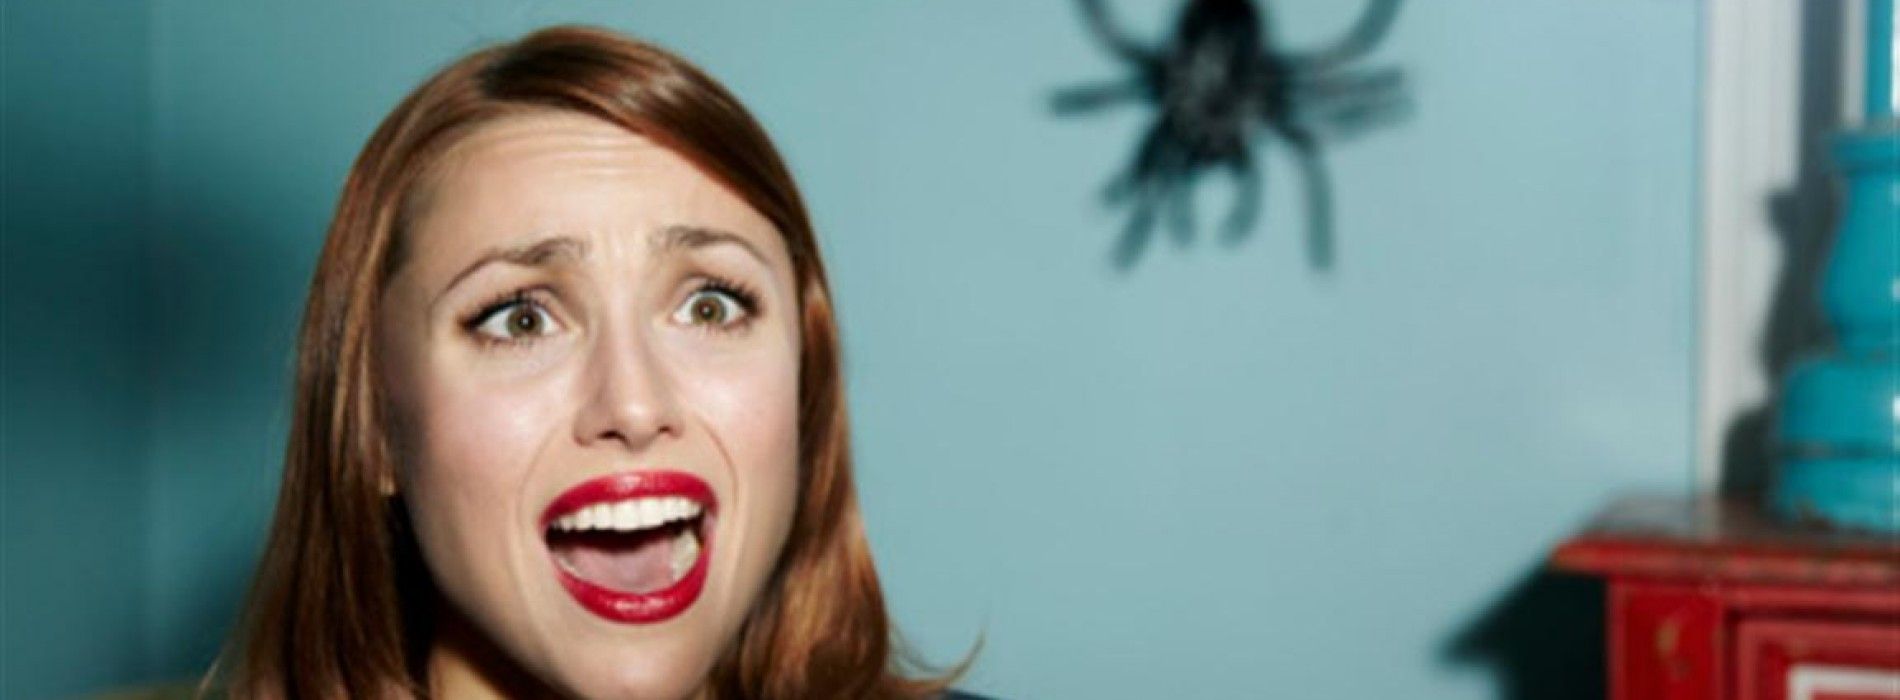 Here's How to Stop Panic Attacks